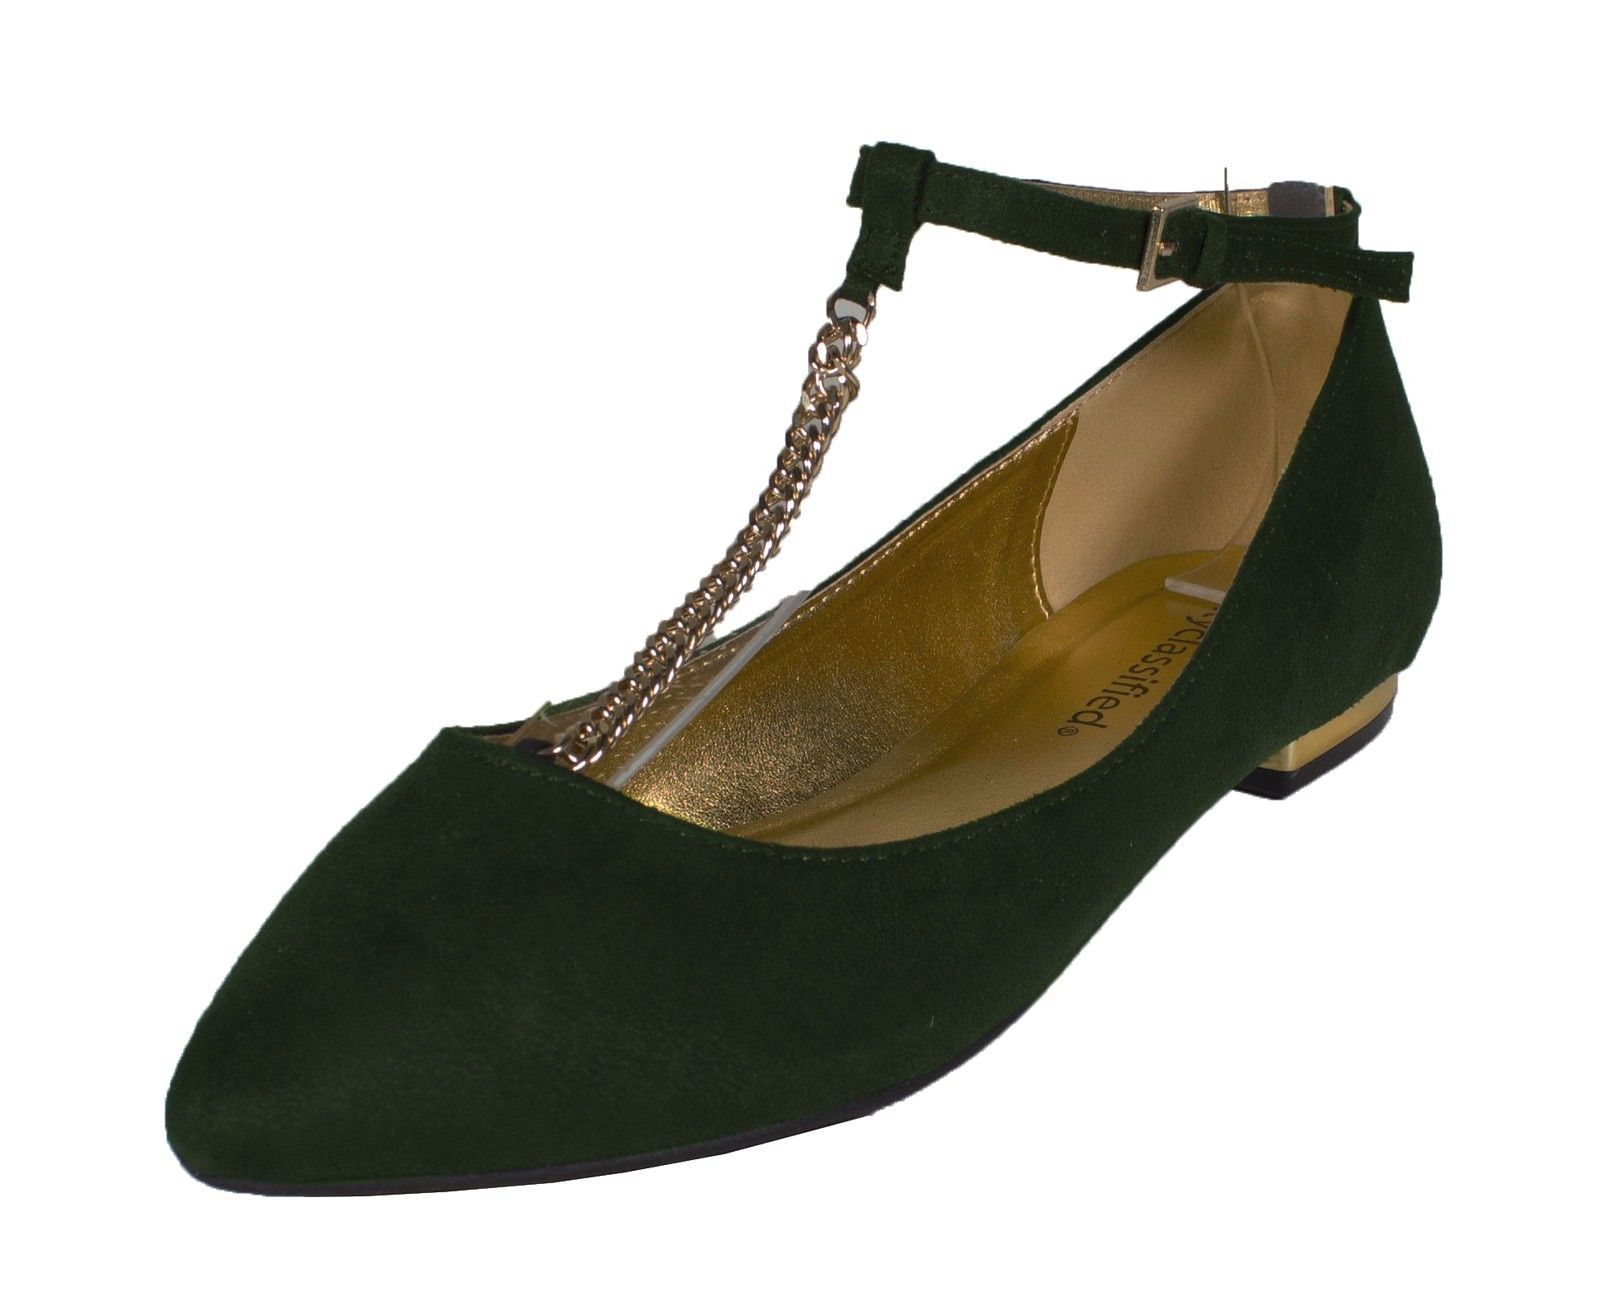 71d2fc5e46d City Classified Women Almond Toe Flats Ankle Strap Dark Green Faux Suede